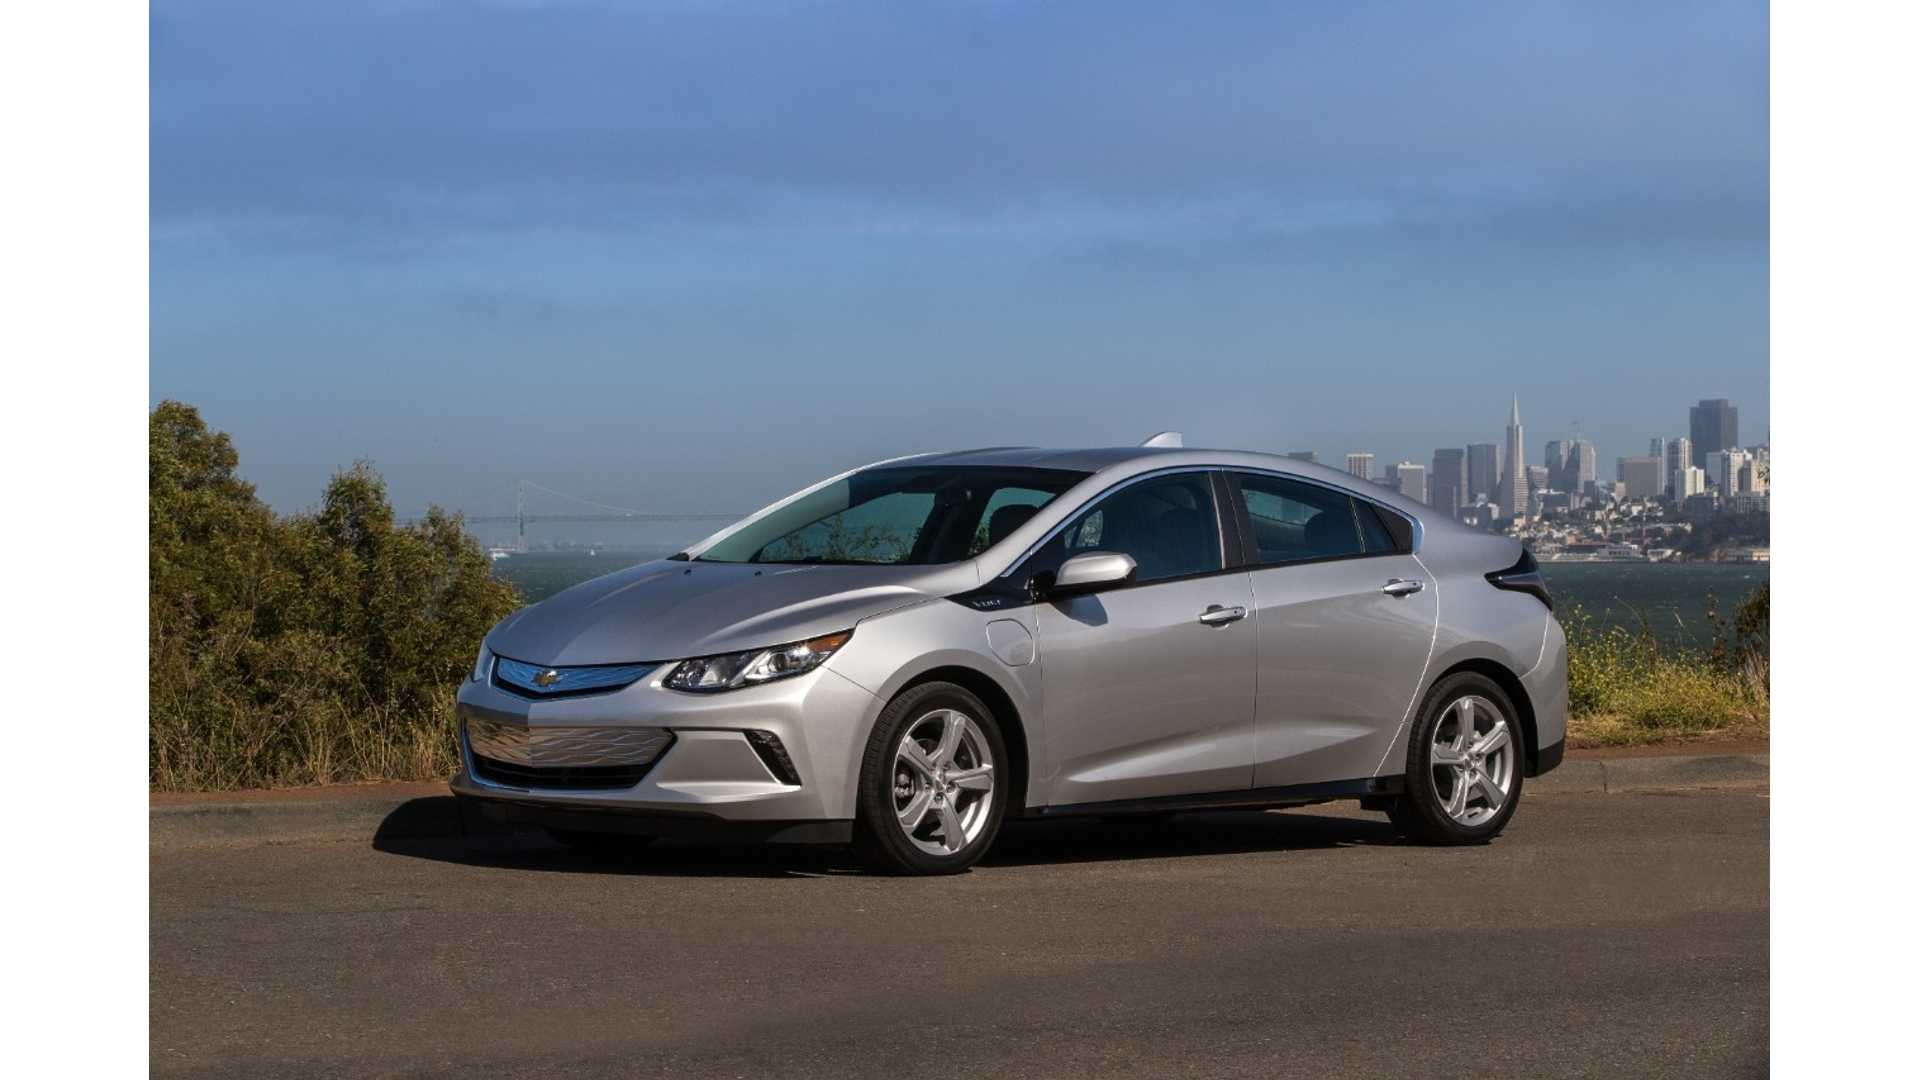 2019 Chevy Volt Finally Gets 7 2 Kw Charger 13 Degrees F Engine Activation